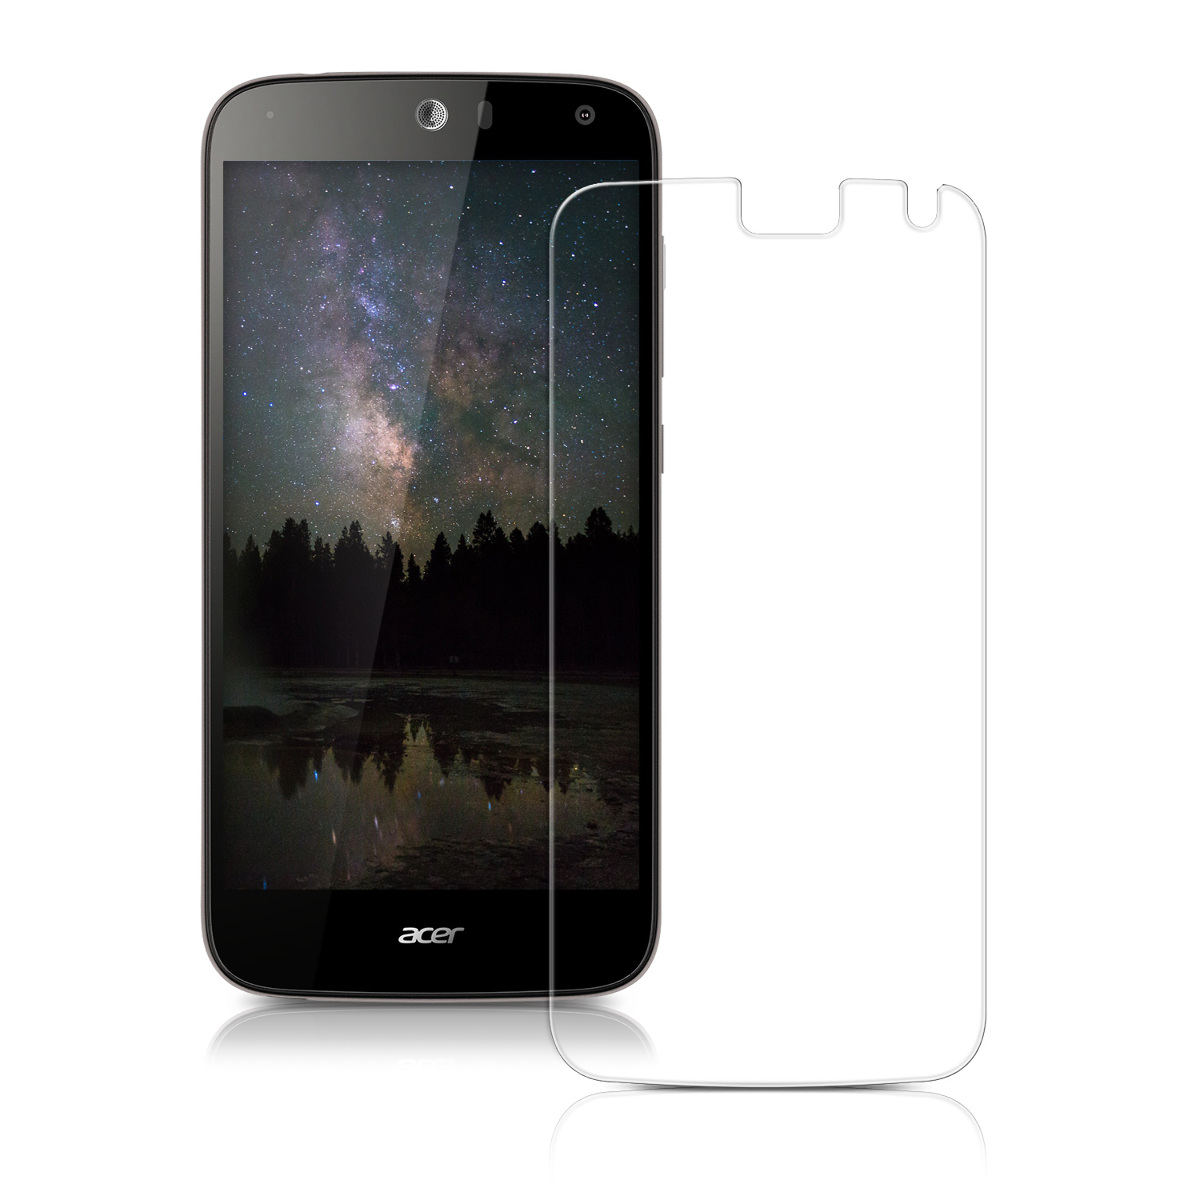 Tempered Glass Screen Protector For Acer Liquid Z630 Ebay E3 E380 Dual Sim Black Kwmobile Crystal Clear Hardened Anti Fingerprint Protective Display Film